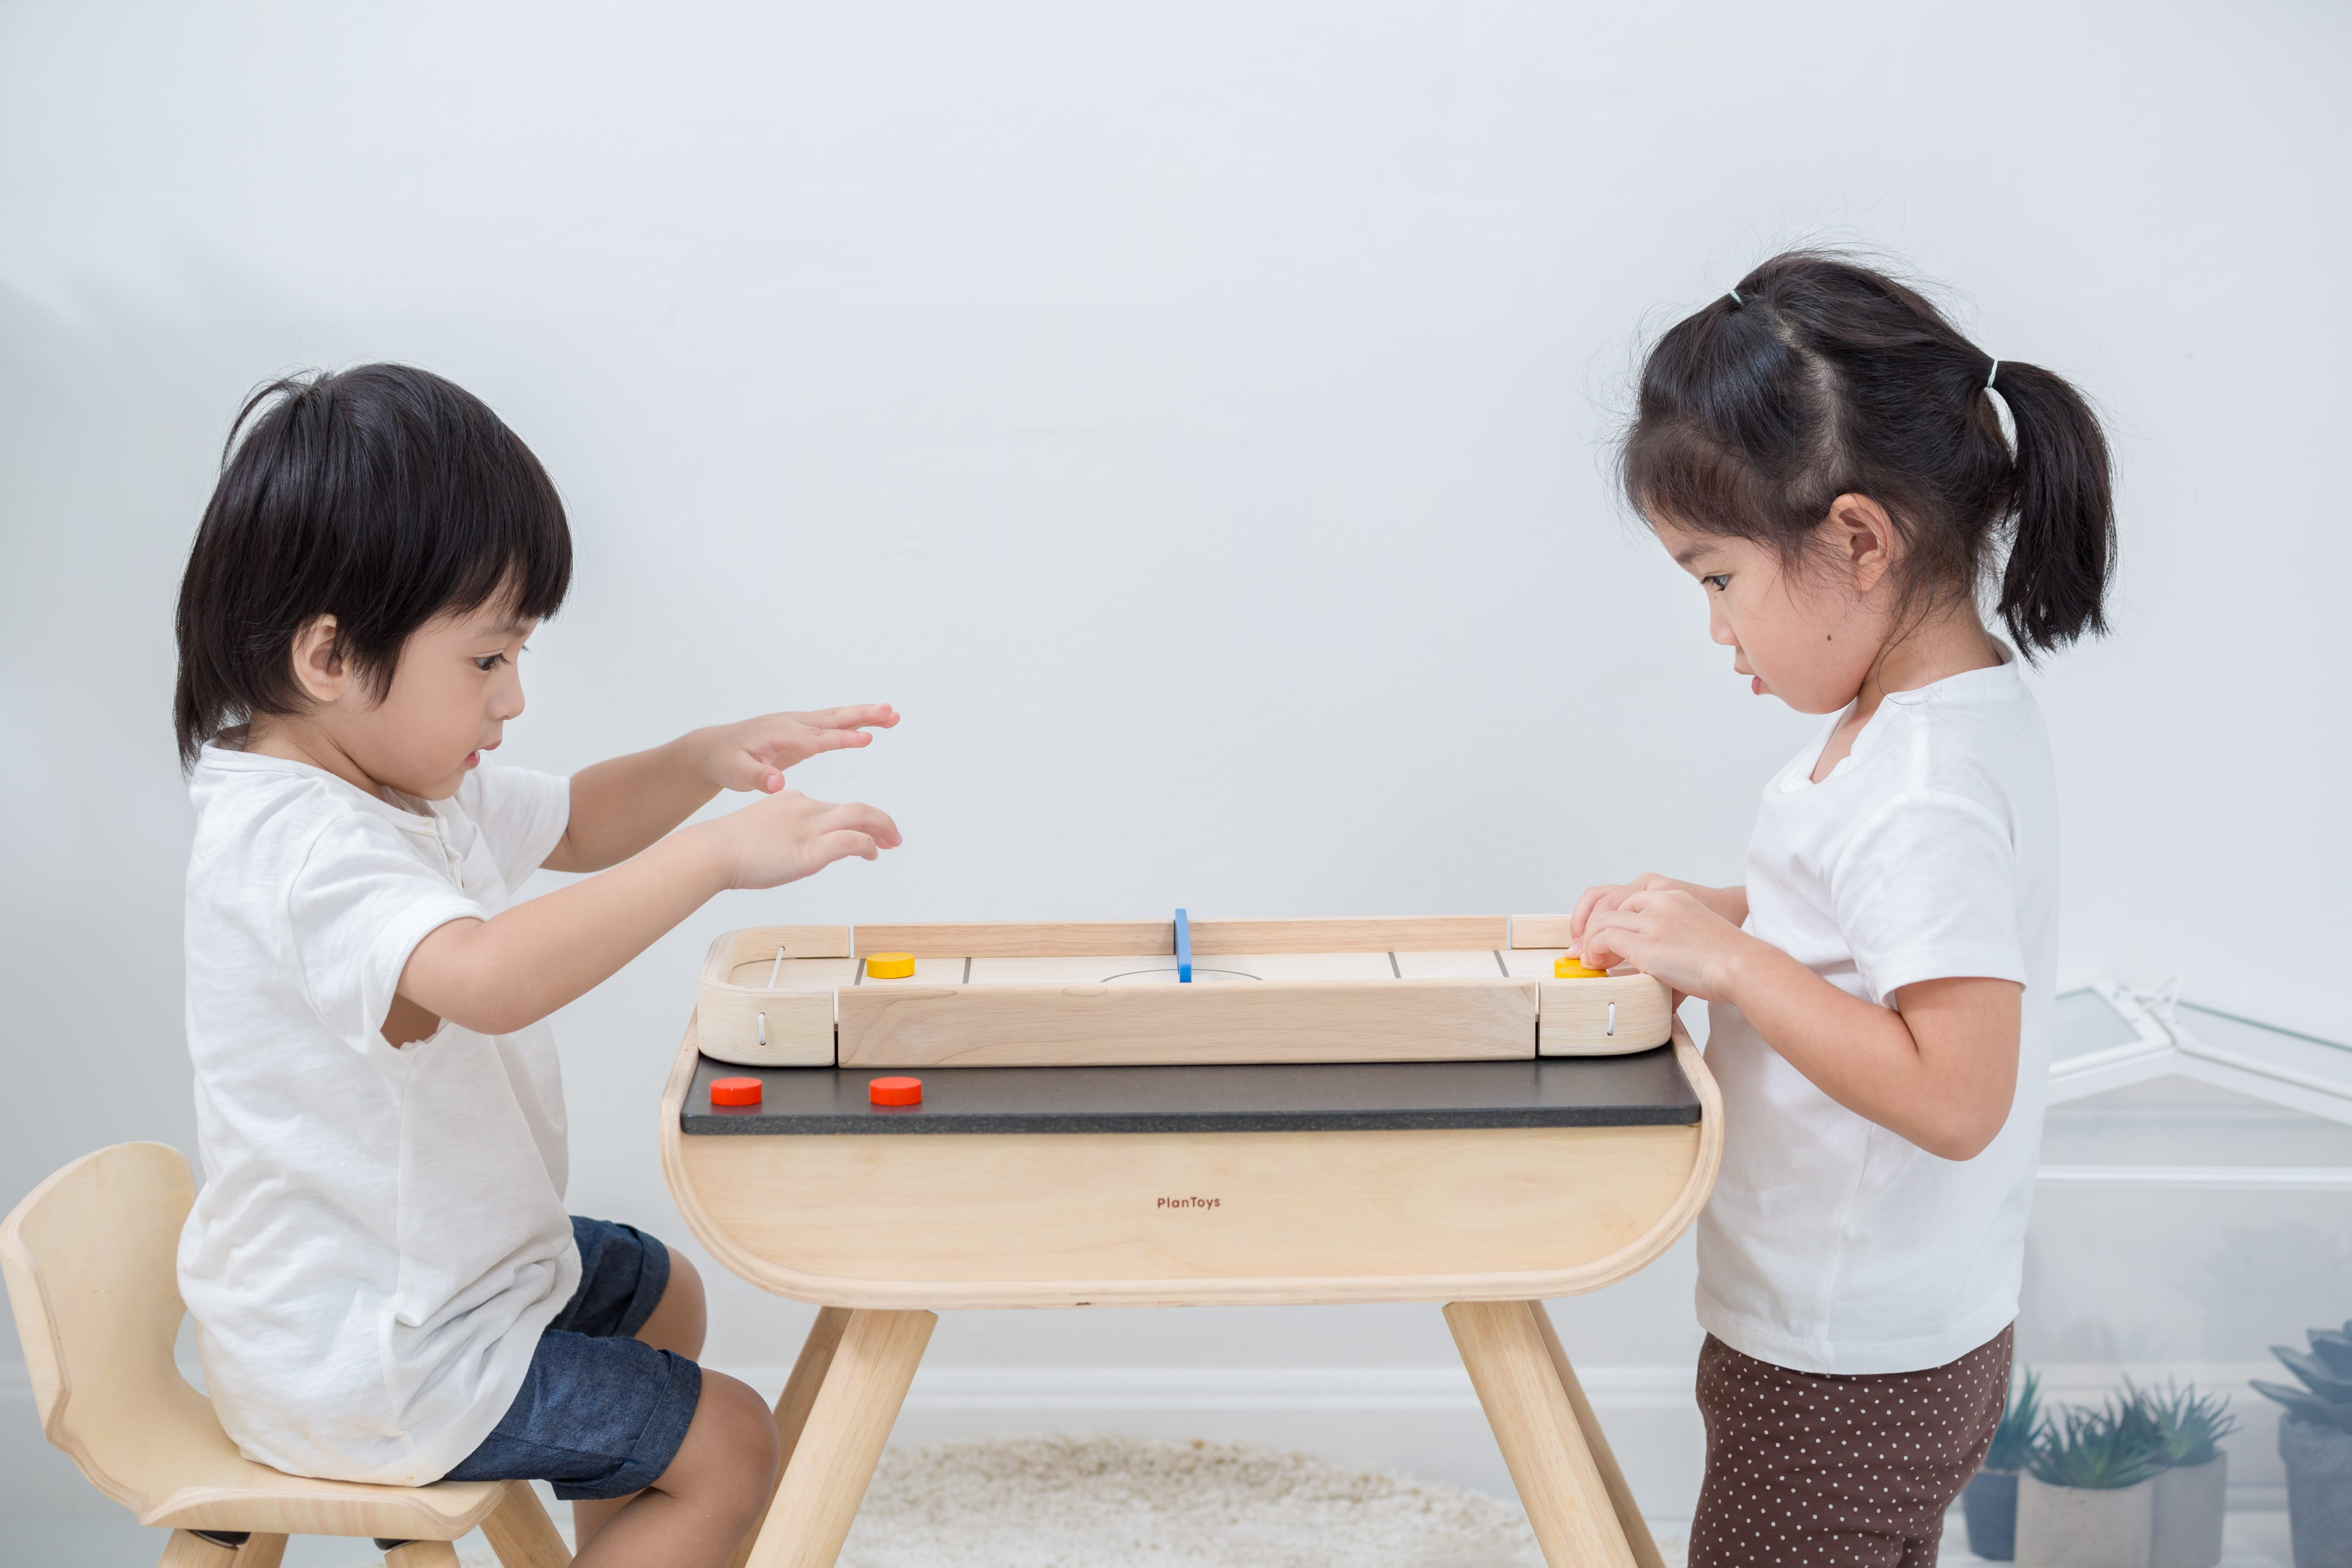 4626_PlanToys_2-IN-1_SHUFFLEBOARD-GAME_Game_and_Puzzles_Fine_Motor_Coordination_Social_Language_and_Communications_Mathematical_3yrs_Wooden_toys_Education_toys_Safety_Toys_Non-toxic_4.jpg